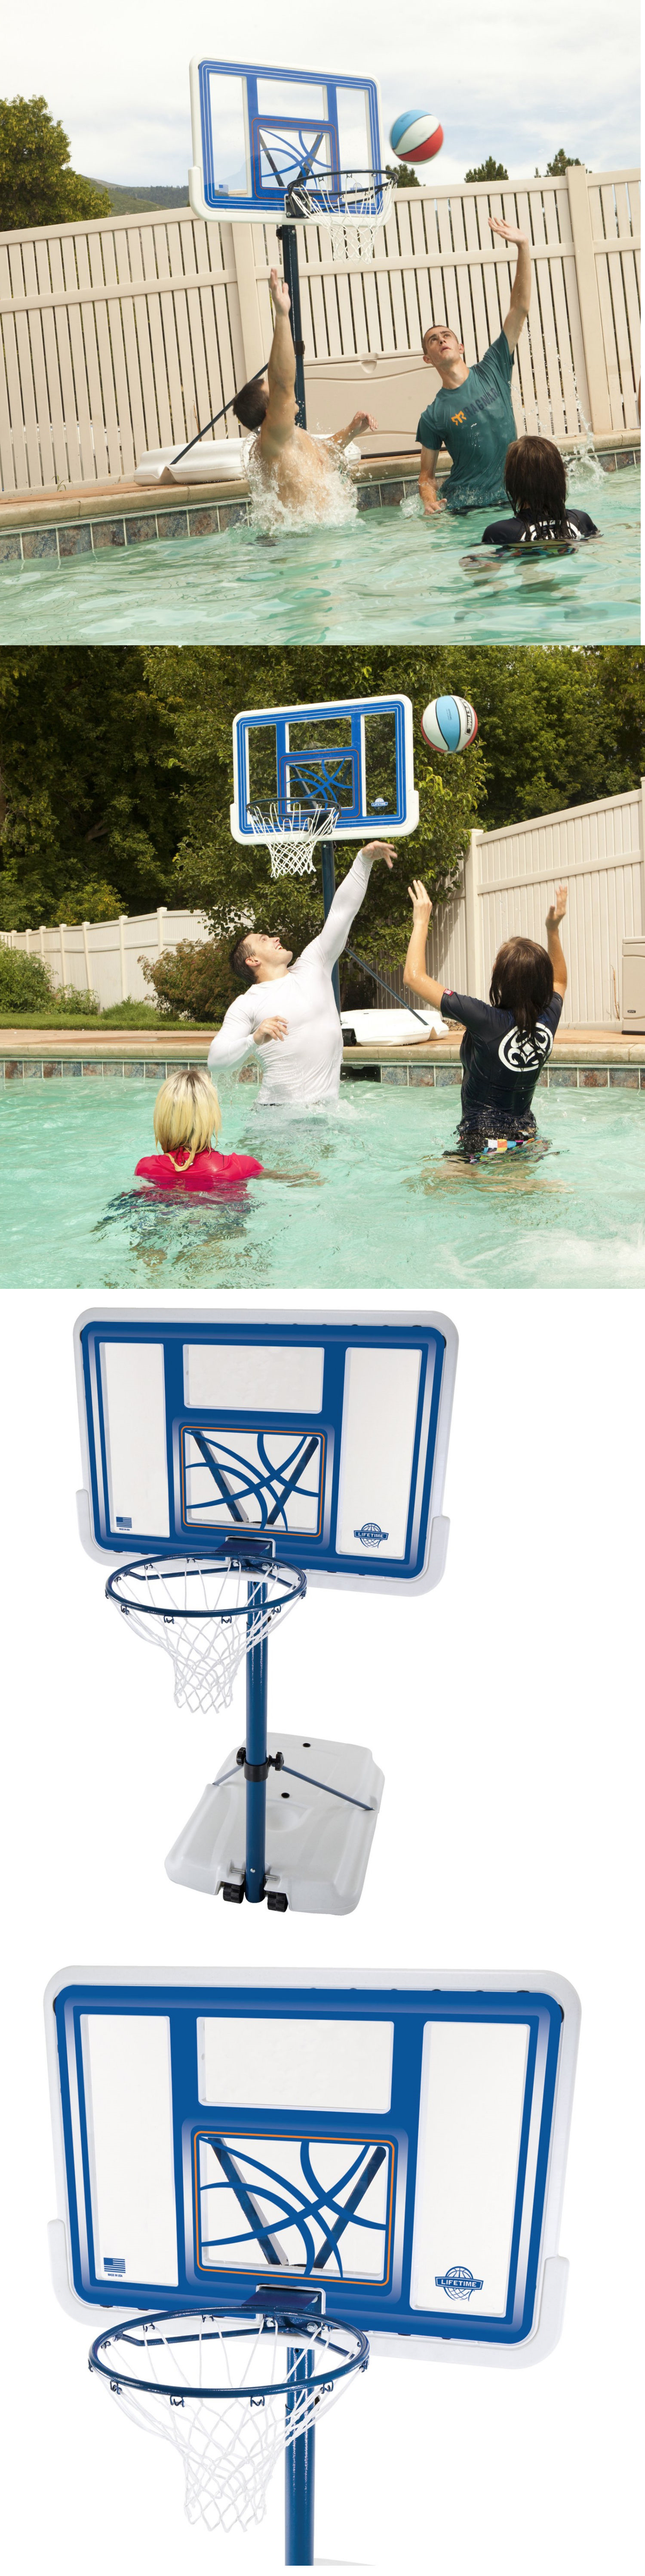 backboard systems 21196 basketball hoops for pools goal hoop net